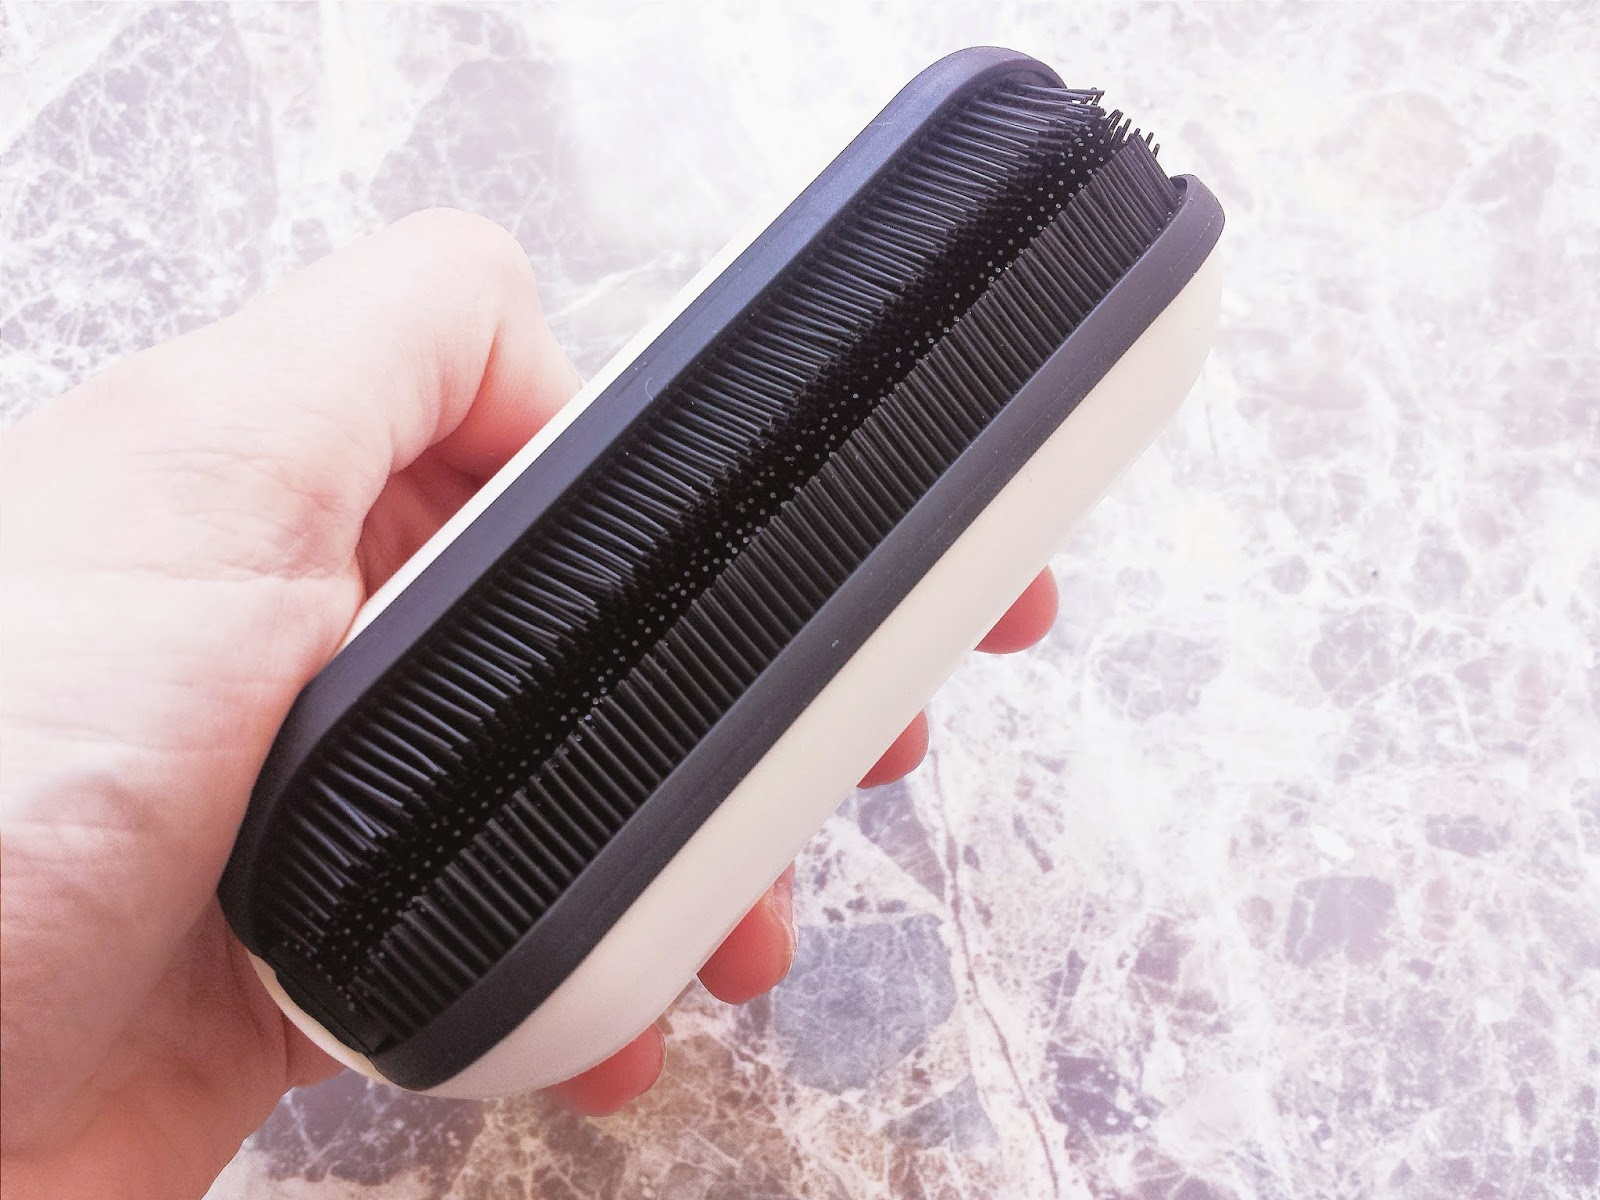 Bruzz Nail Brush Most Hygienic Brush